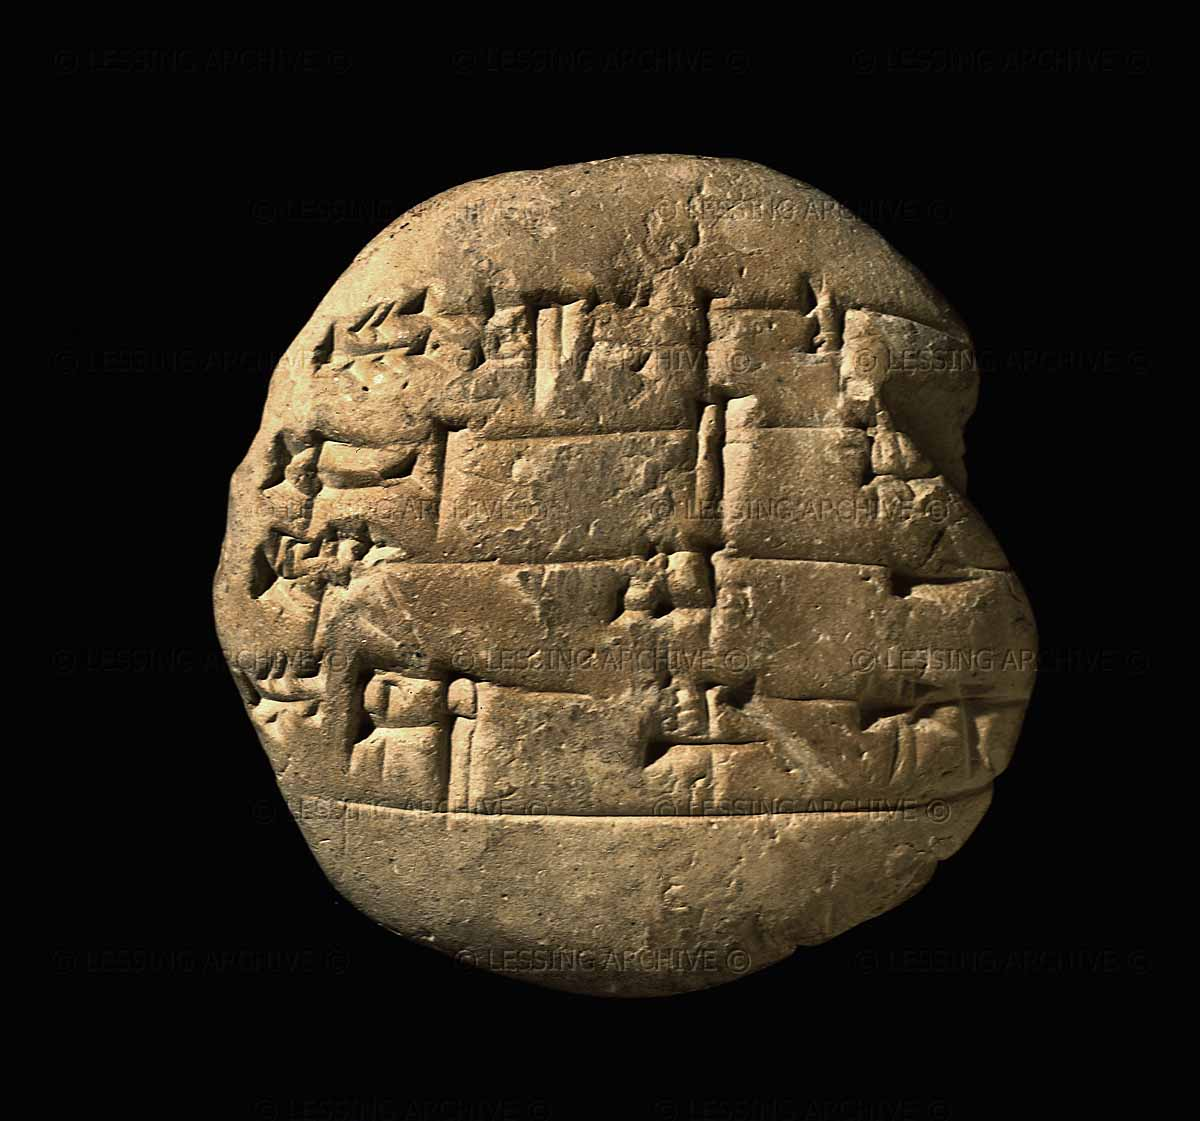 "the making of a scribe, tablet with schoolwork, Old Babylonian artefact, probably from southern Iraq, 1900-1700 B.C., schooling began at an early age in the ""tablet-house"" under an older student called ""big brother"", after completing their training, students became entitled to call themselves ""scribes"""